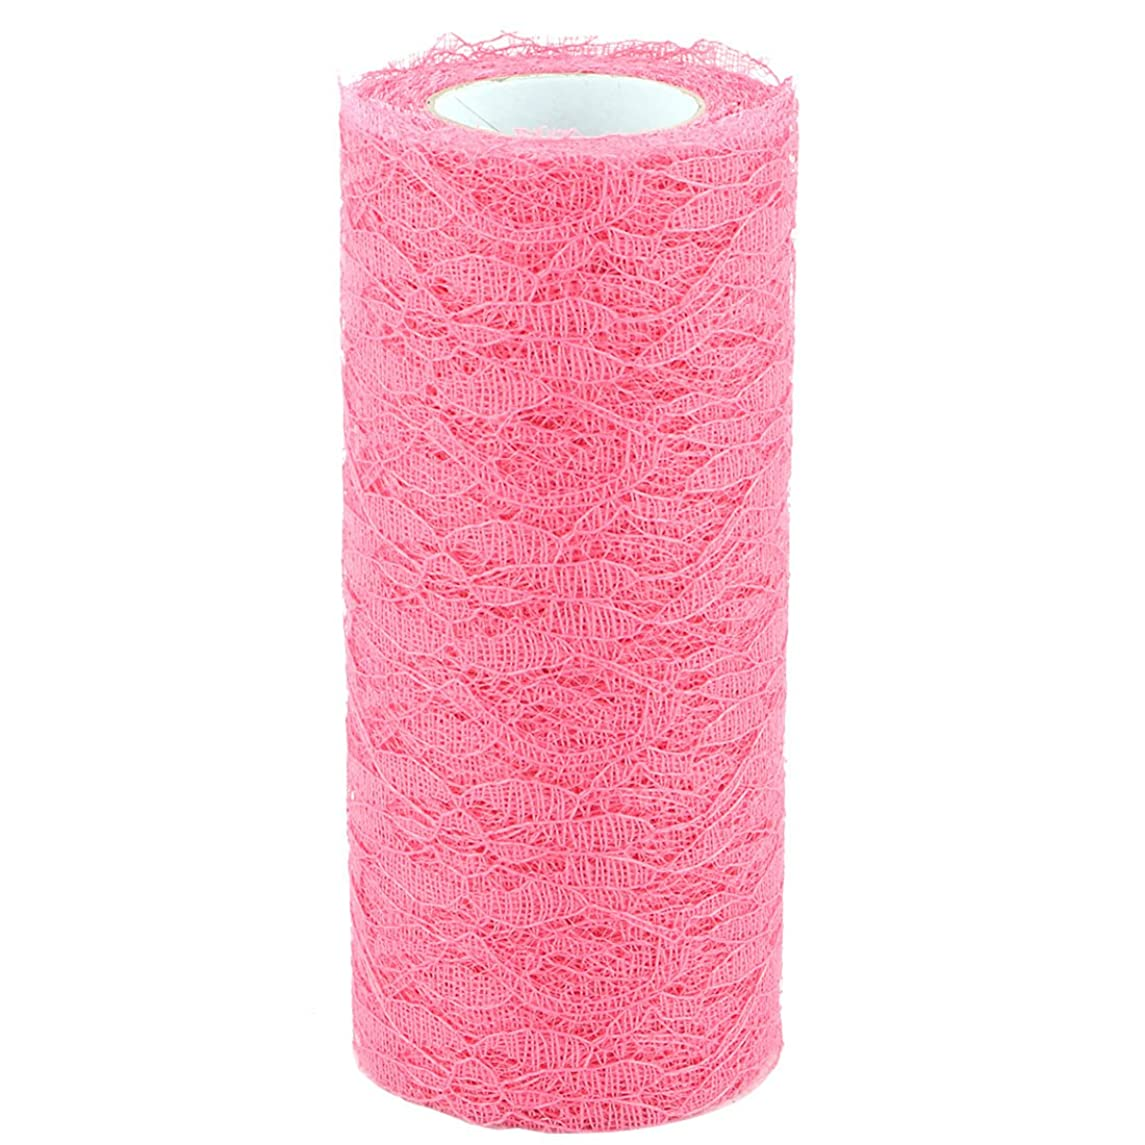 uxcell Lace Household Tutu Gift Decor DIY Tulle Spool Roll 6 Inch x 10 Yards Dark Pink